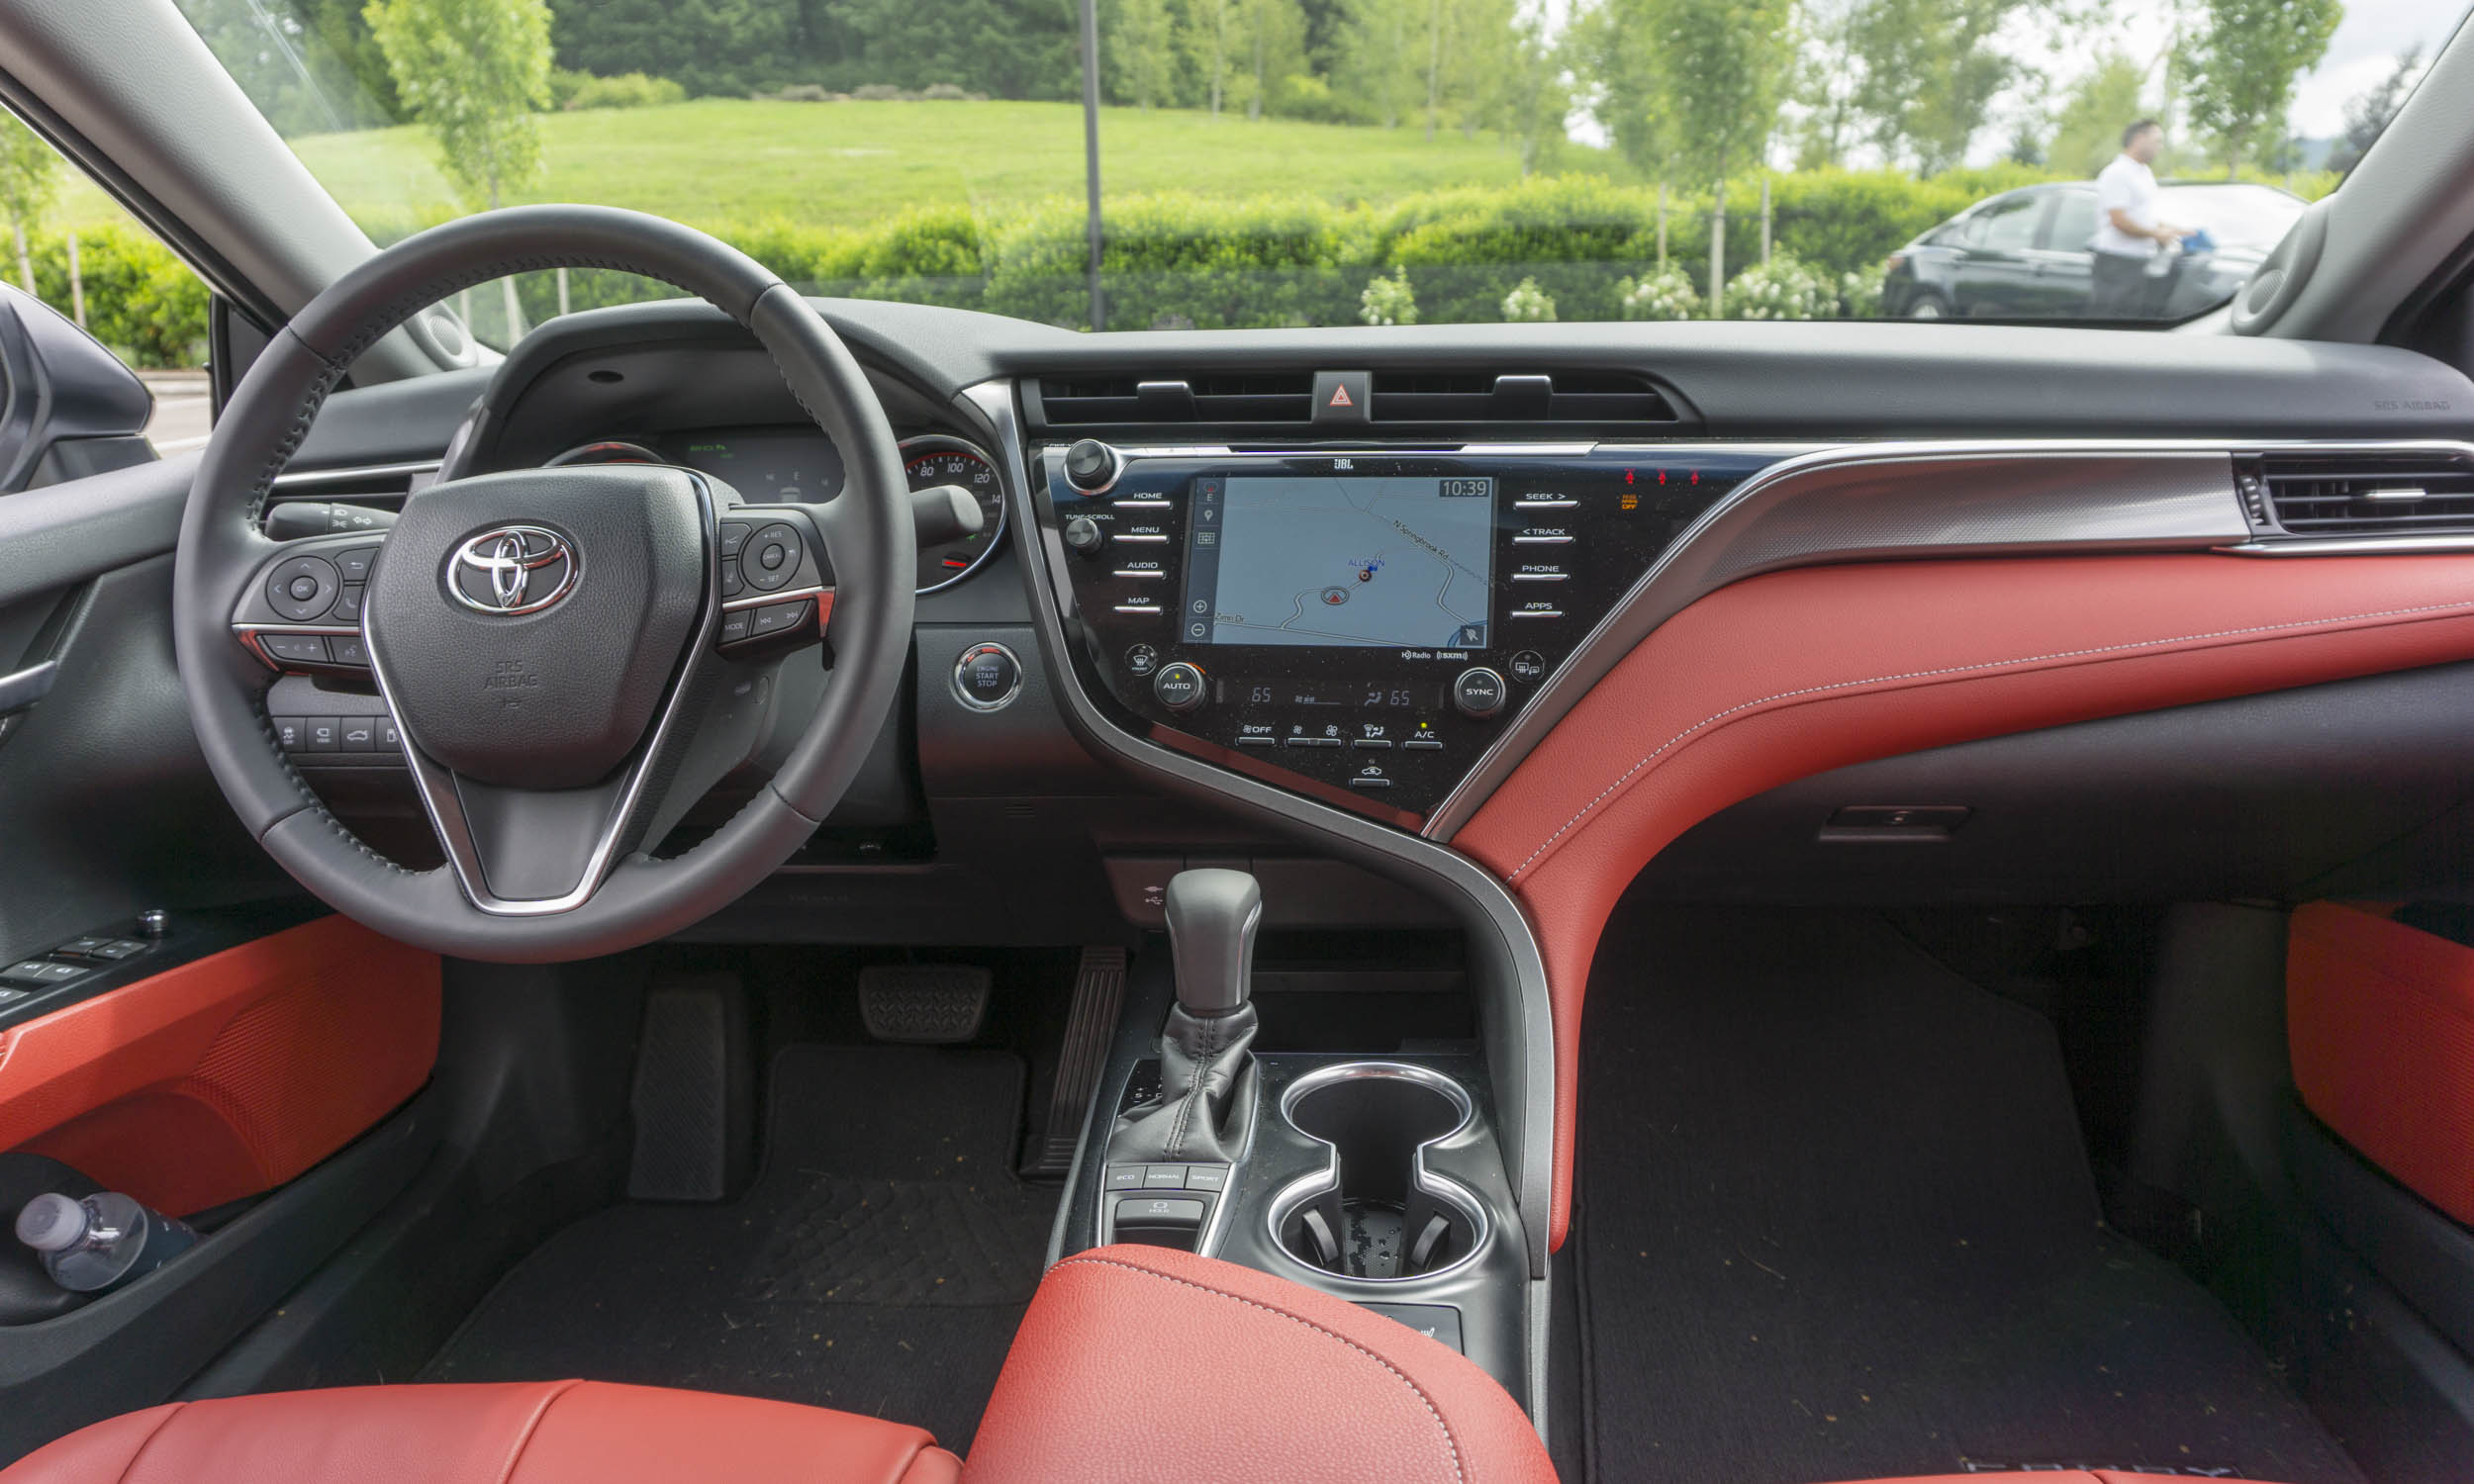 2018 toyota camry interior. Modren Toyota Perry Stern Automotive Content Experience Intended 2018 Toyota Camry Interior